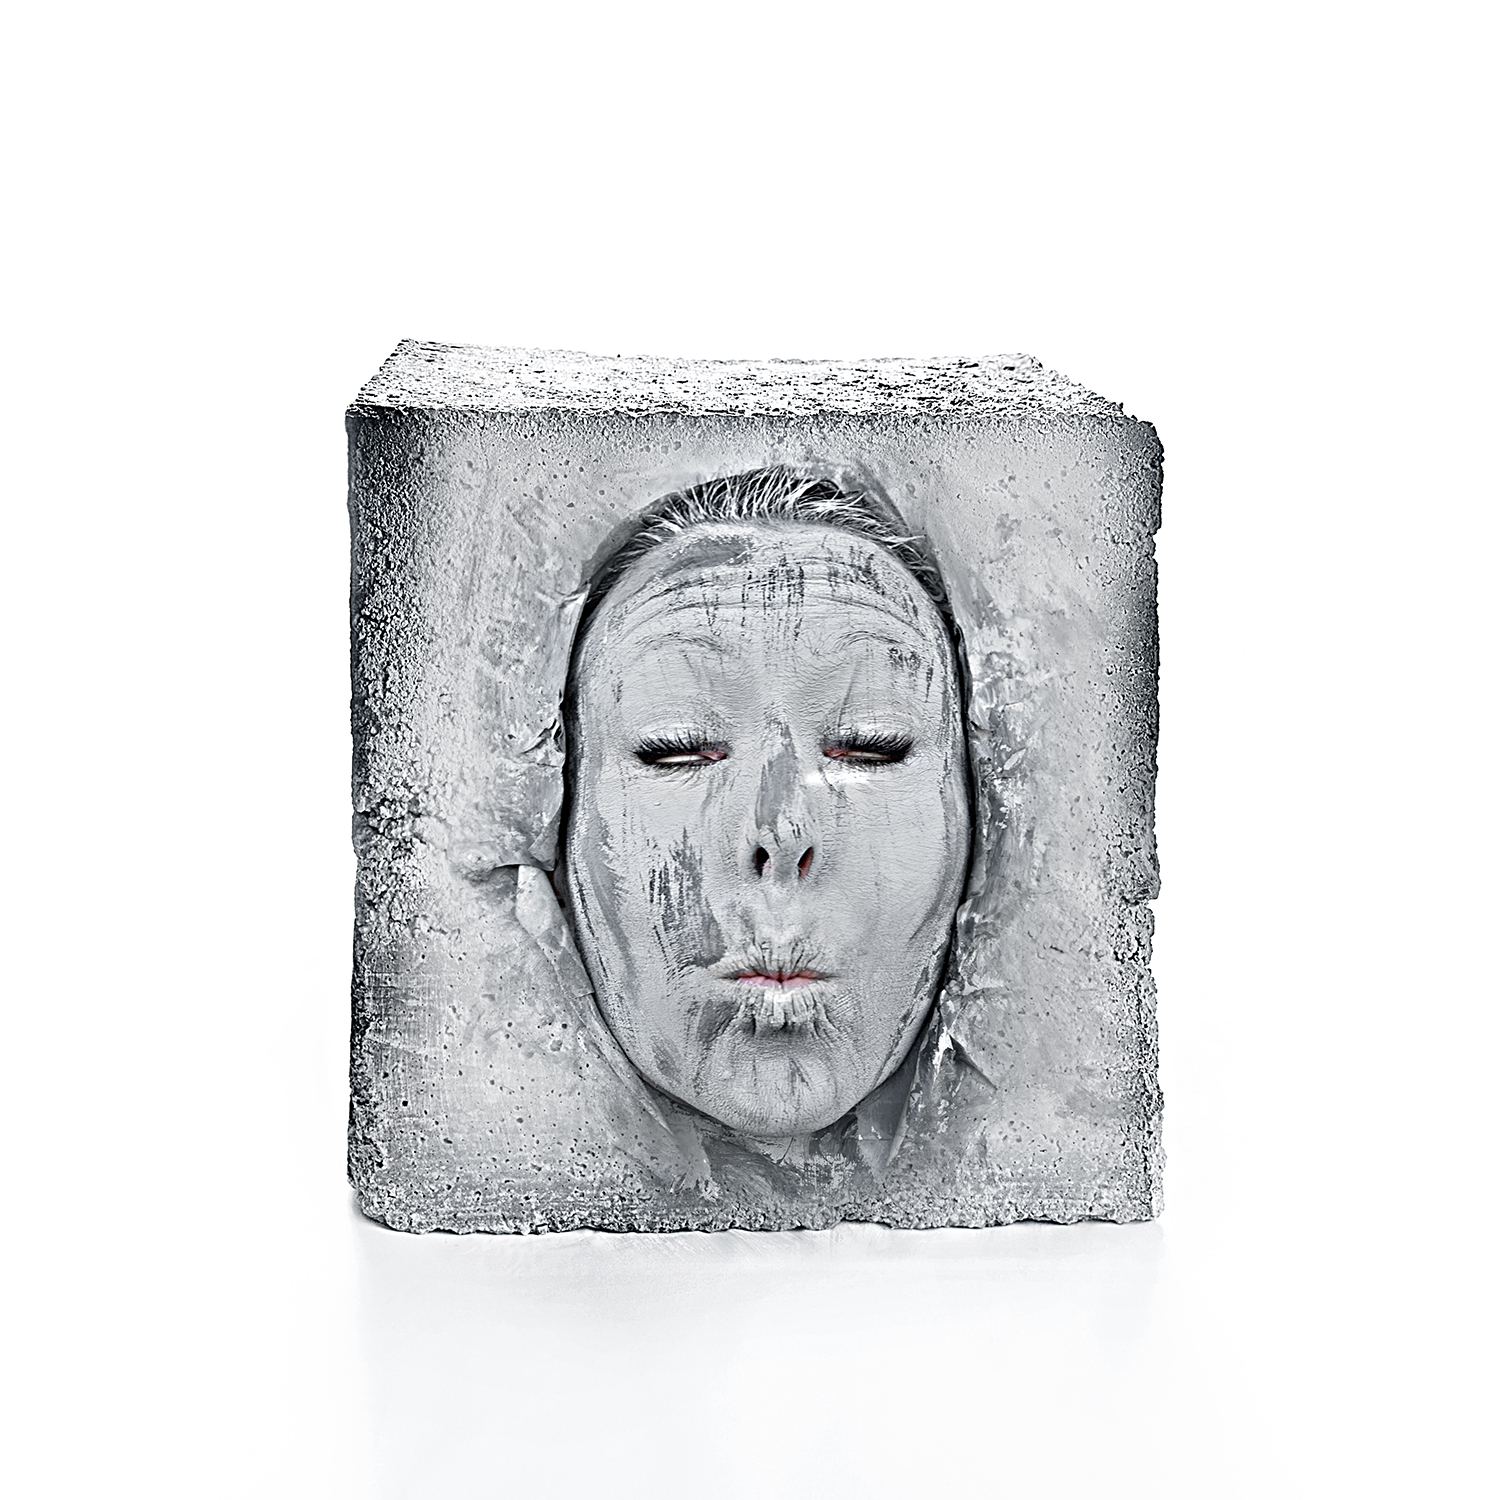 We need a face 2-40cm x 40cm – PRINT ON TRANSPARENT FILM MOUNTED ON PLEXIGLASS / LIGHTBOX-© 2011 – Edition of 5